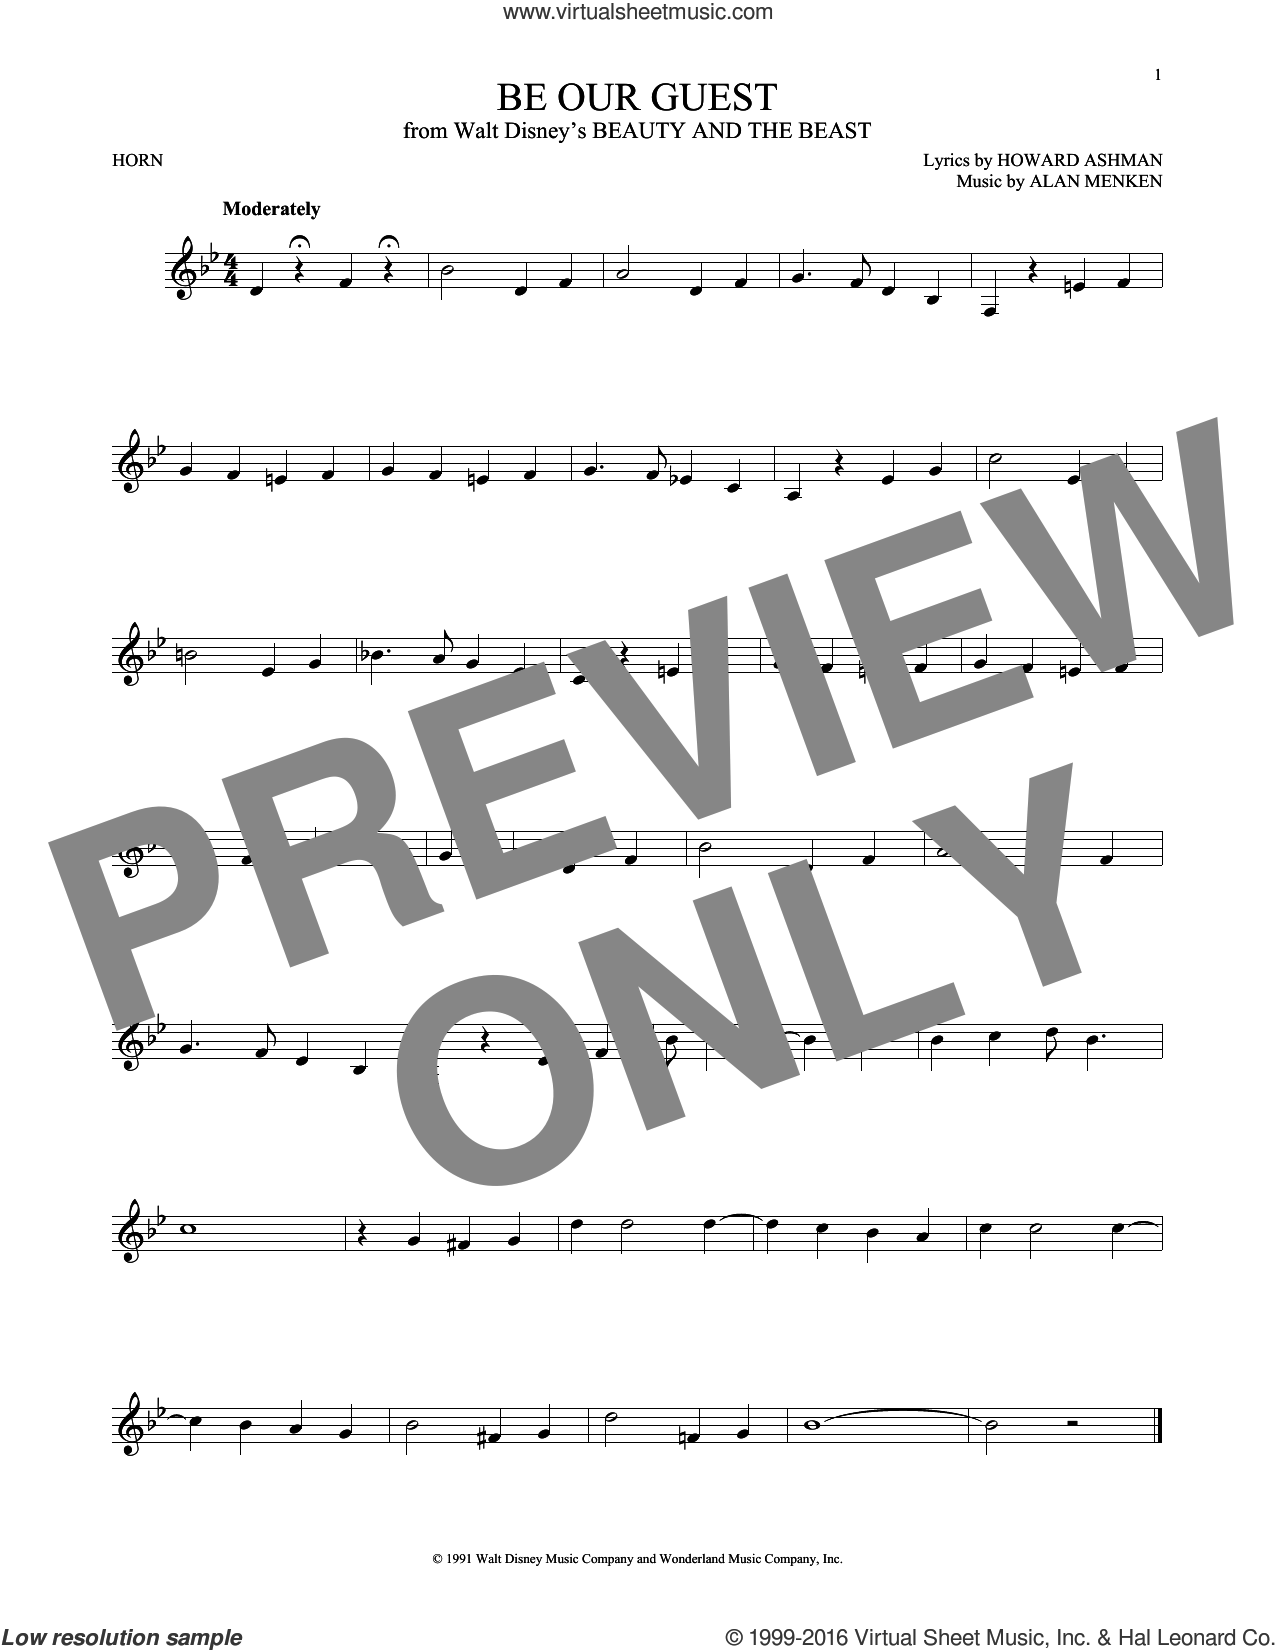 Be Our Guest sheet music for horn solo by Howard Ashman